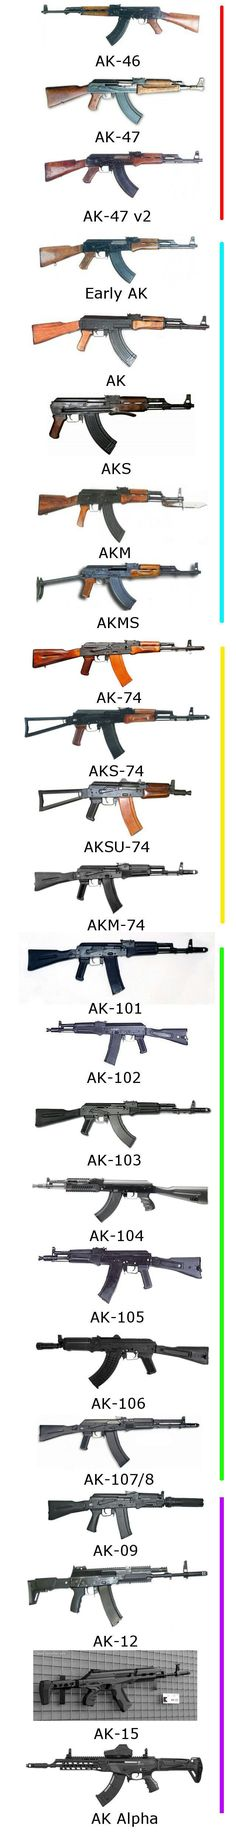 """Not only """"AK-47"""""""